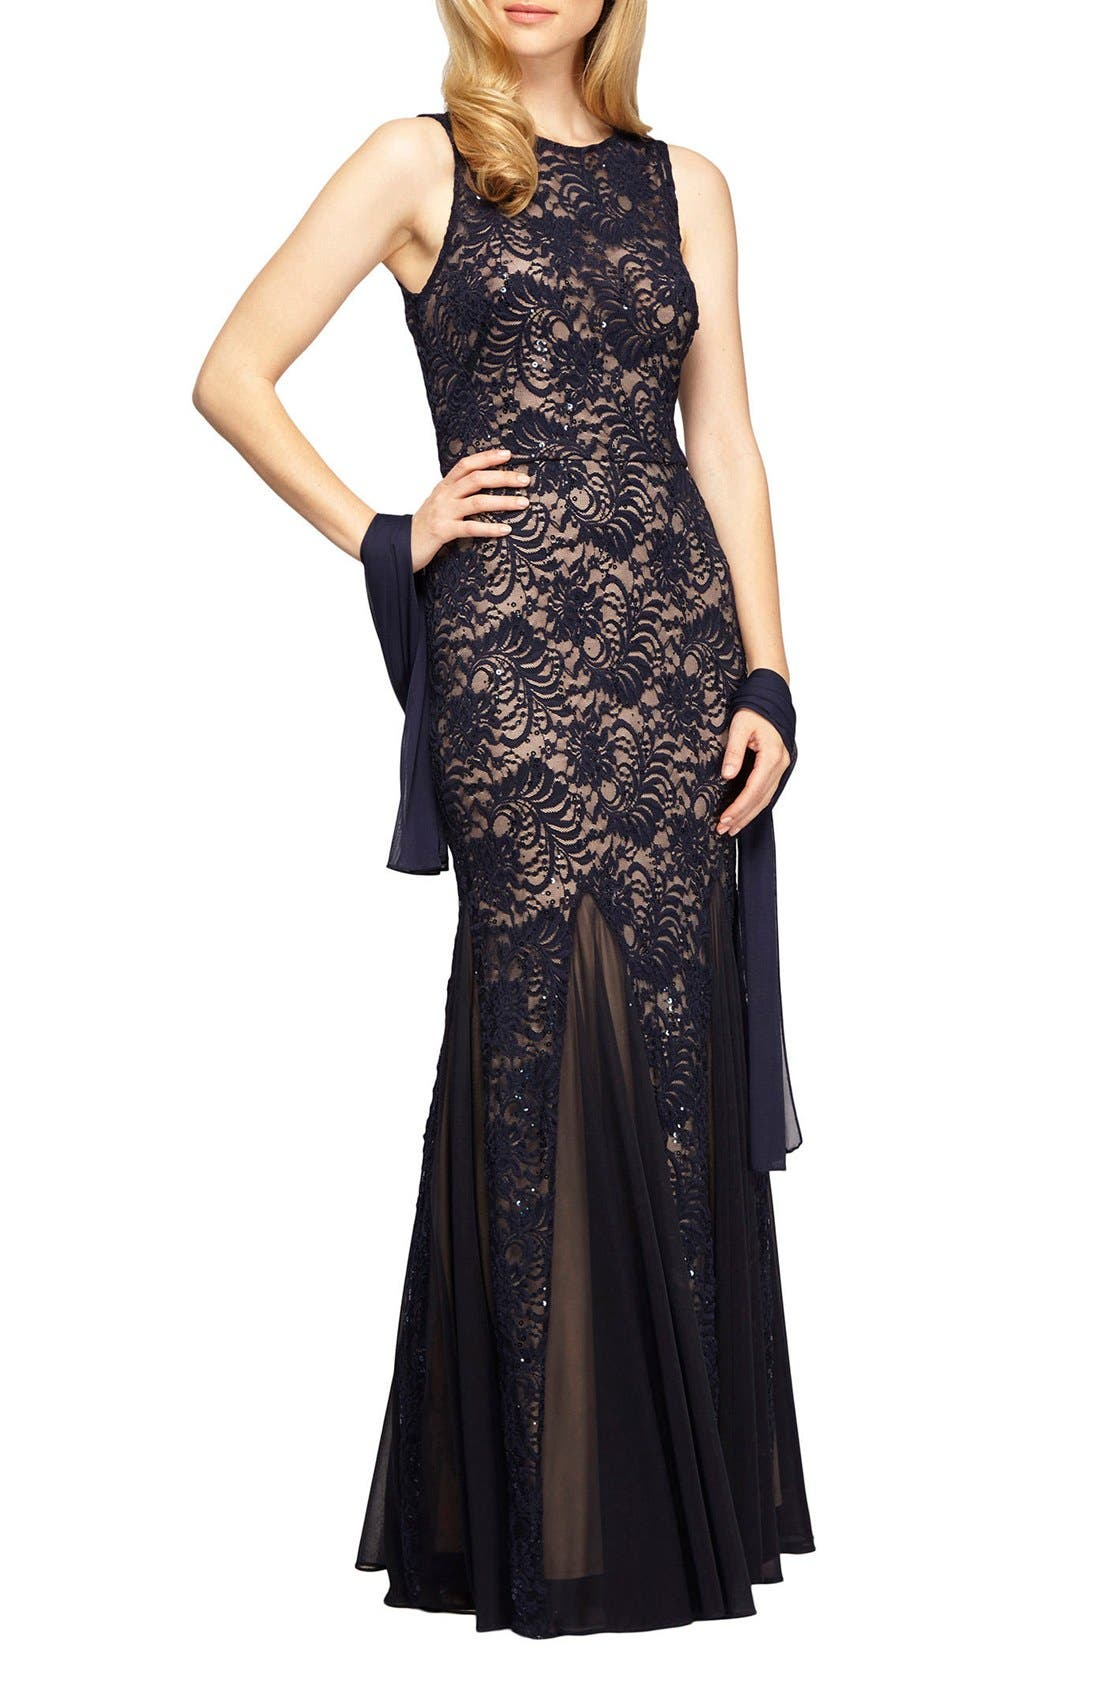 Main Image - Alex Evenings Sequin Lace Mermaid Gown & Shawl (Regular & Petite)